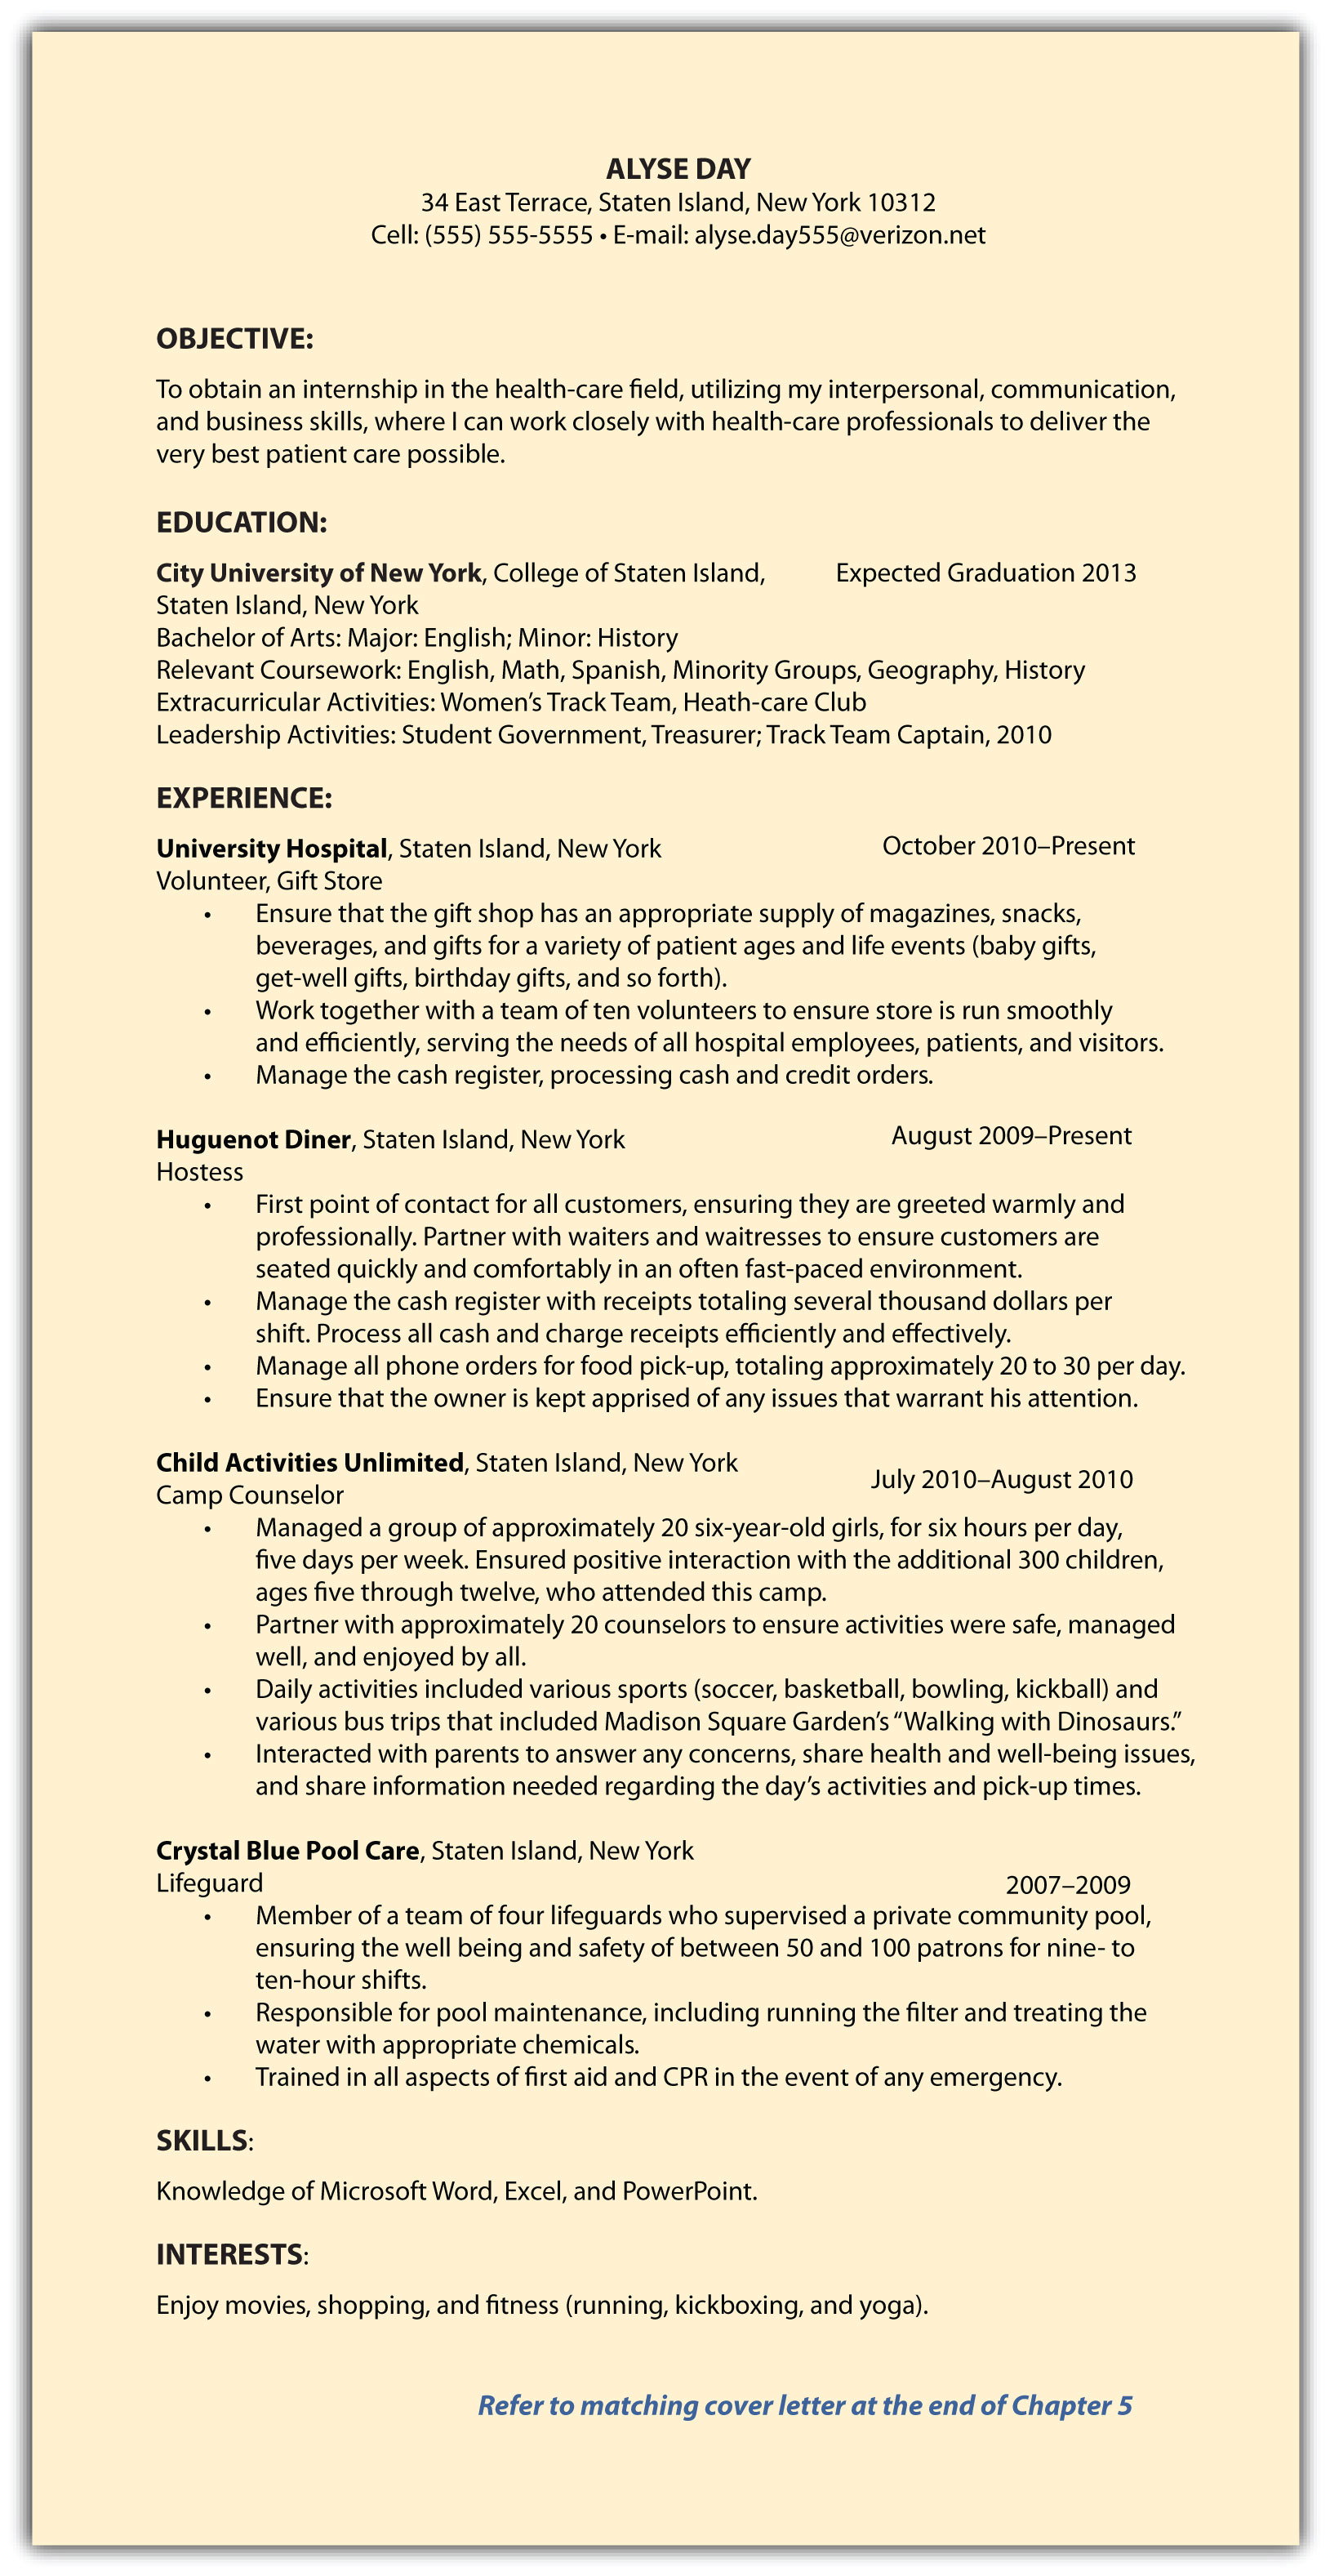 post resume job search